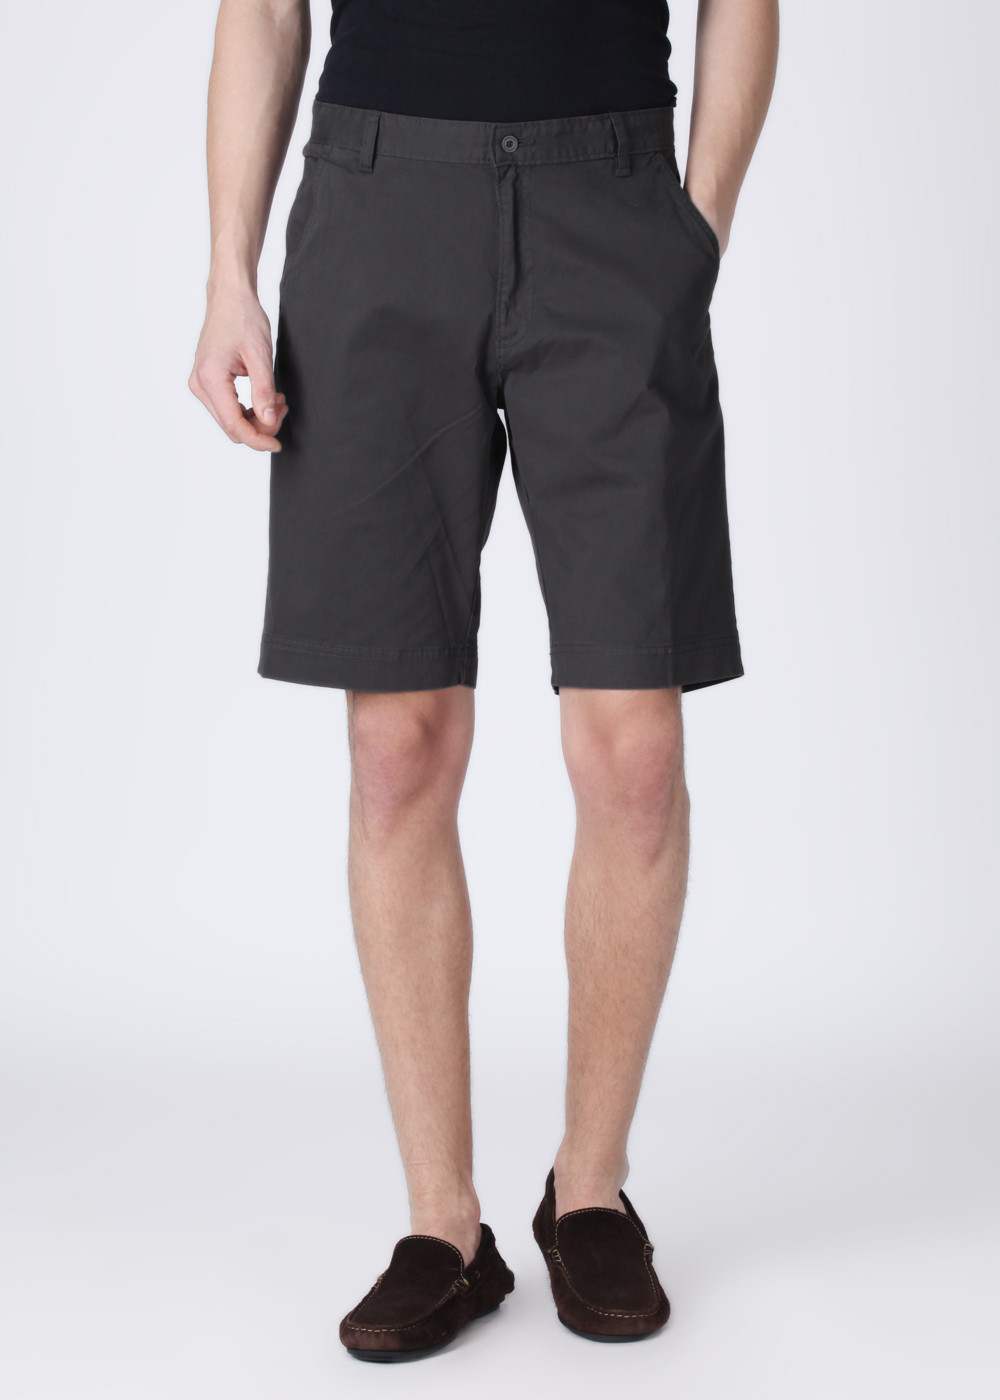 Manchester United Solid Men's Grey Shorts